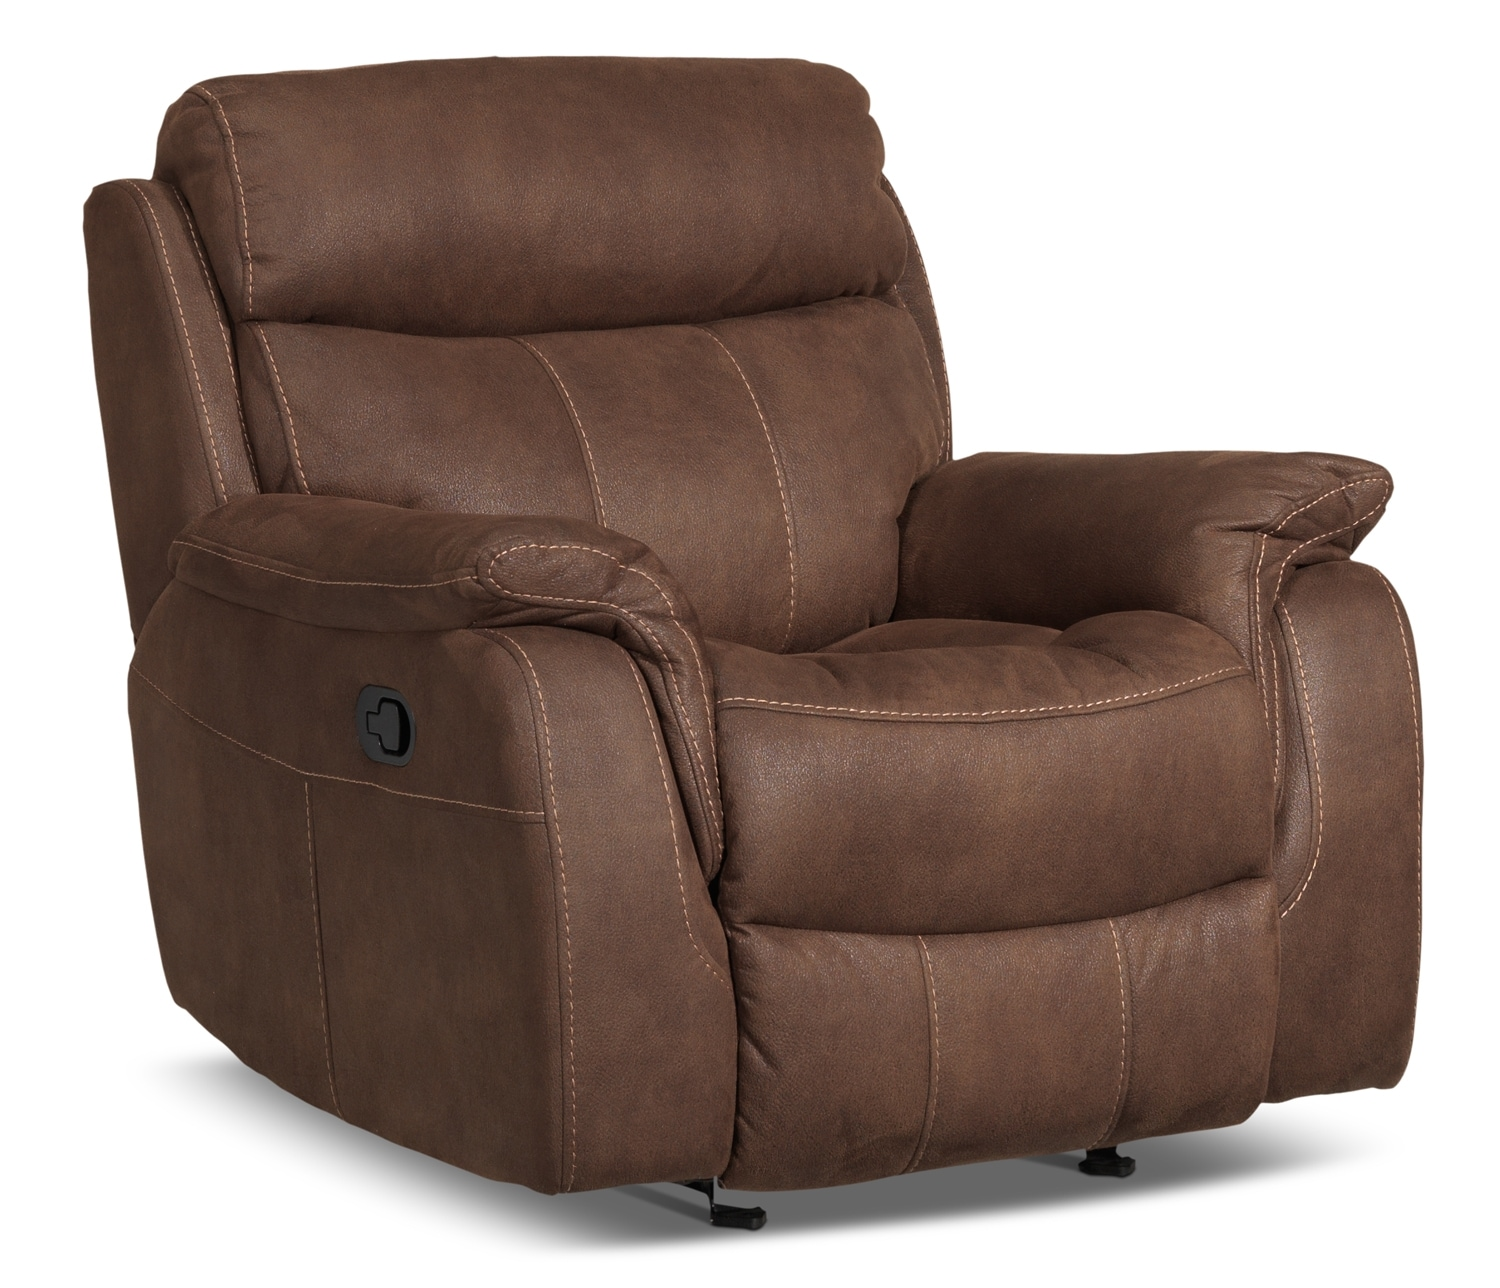 Leon S Furniture Sectional Sofas: Morrow Reclining Sofa - Saddle Brown